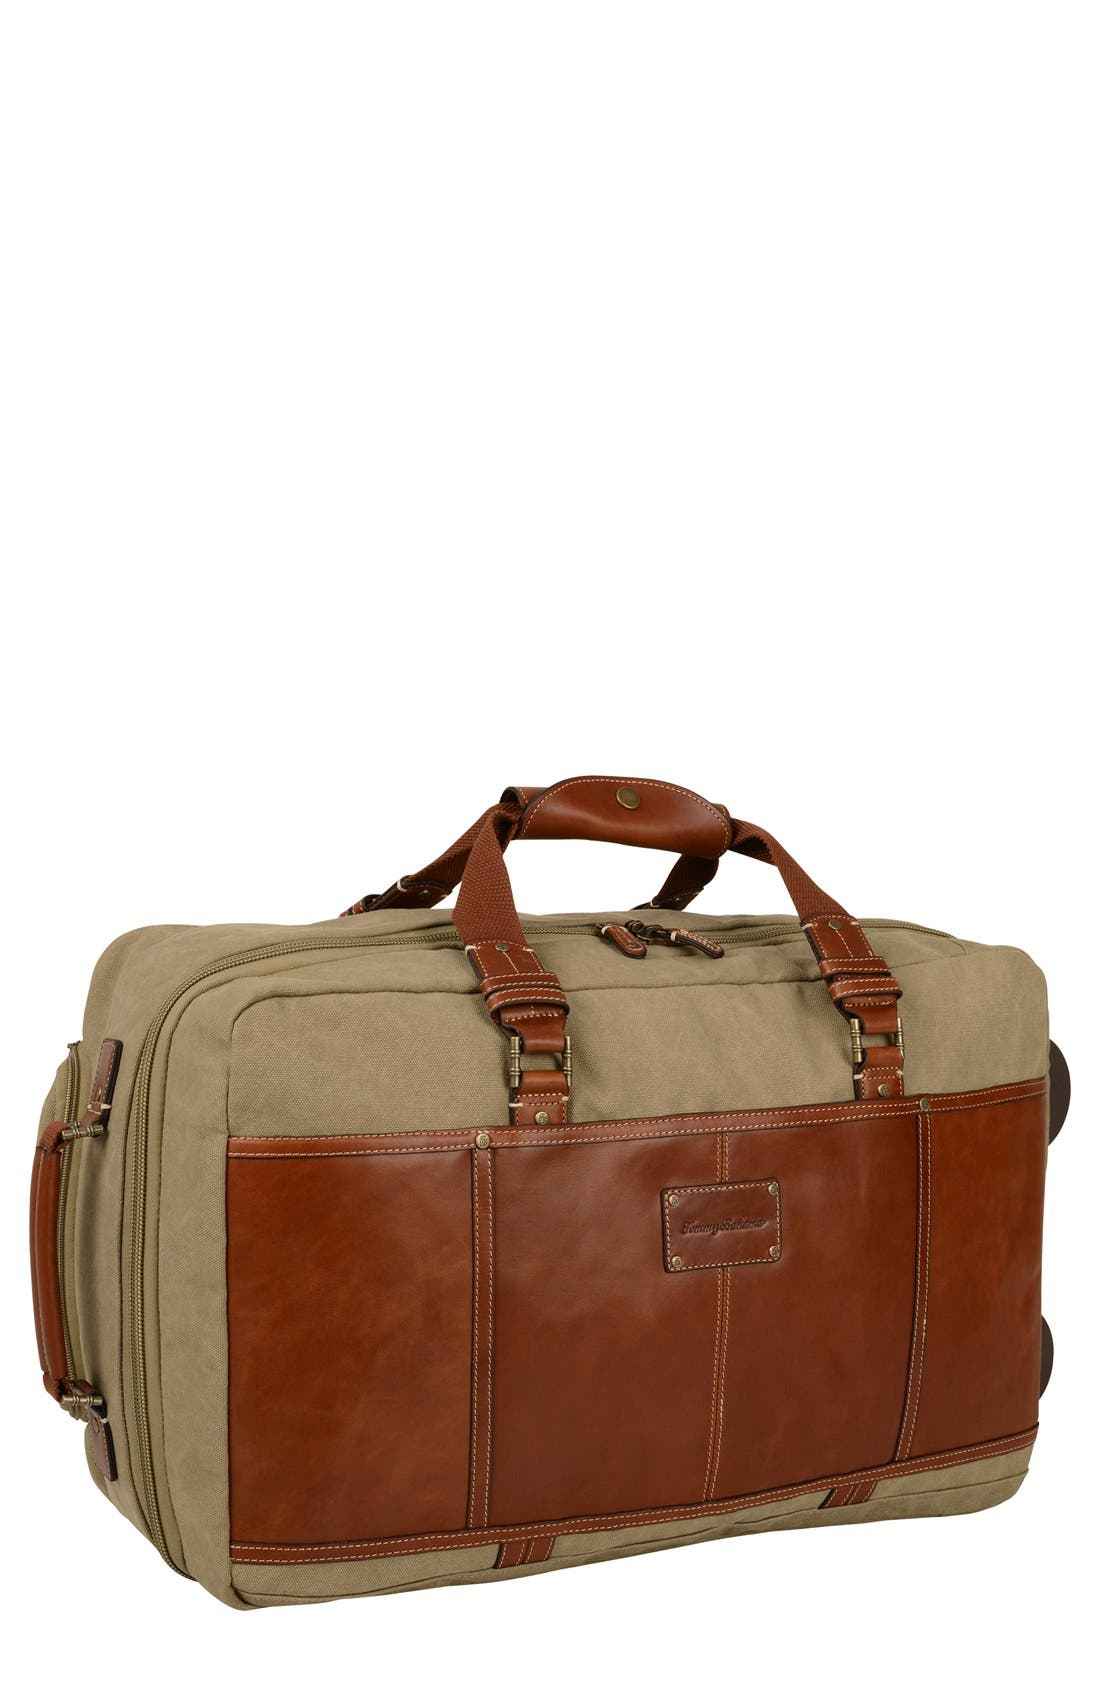 TOMMY BAHAMA Canvas & Leather Wheeled Suitcase